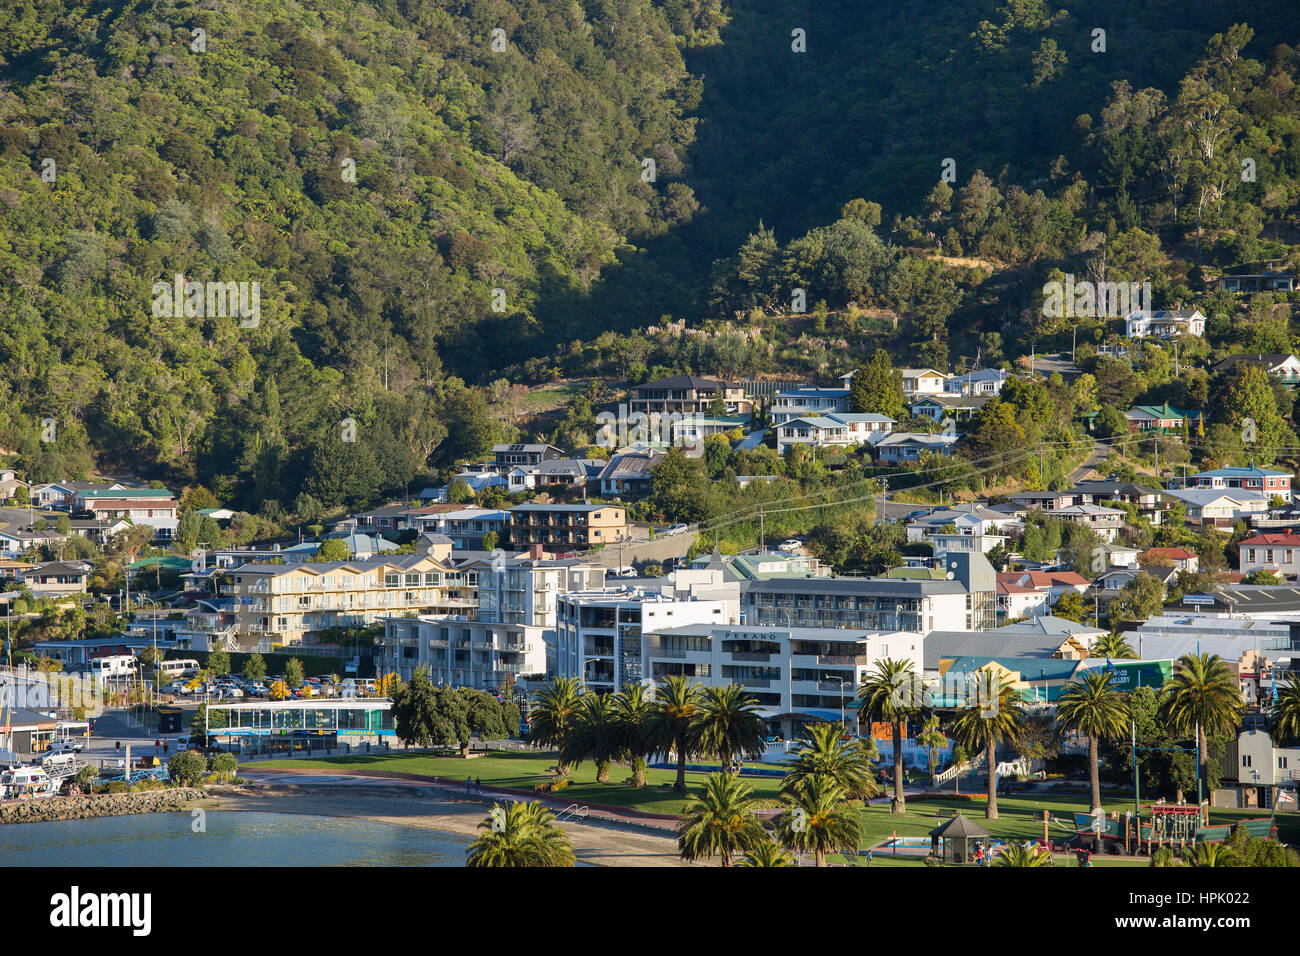 Picton, Marlborough, New Zealand. View to the waterfront from hillside viewpoint on Queen Charlotte Drive. - Stock Image